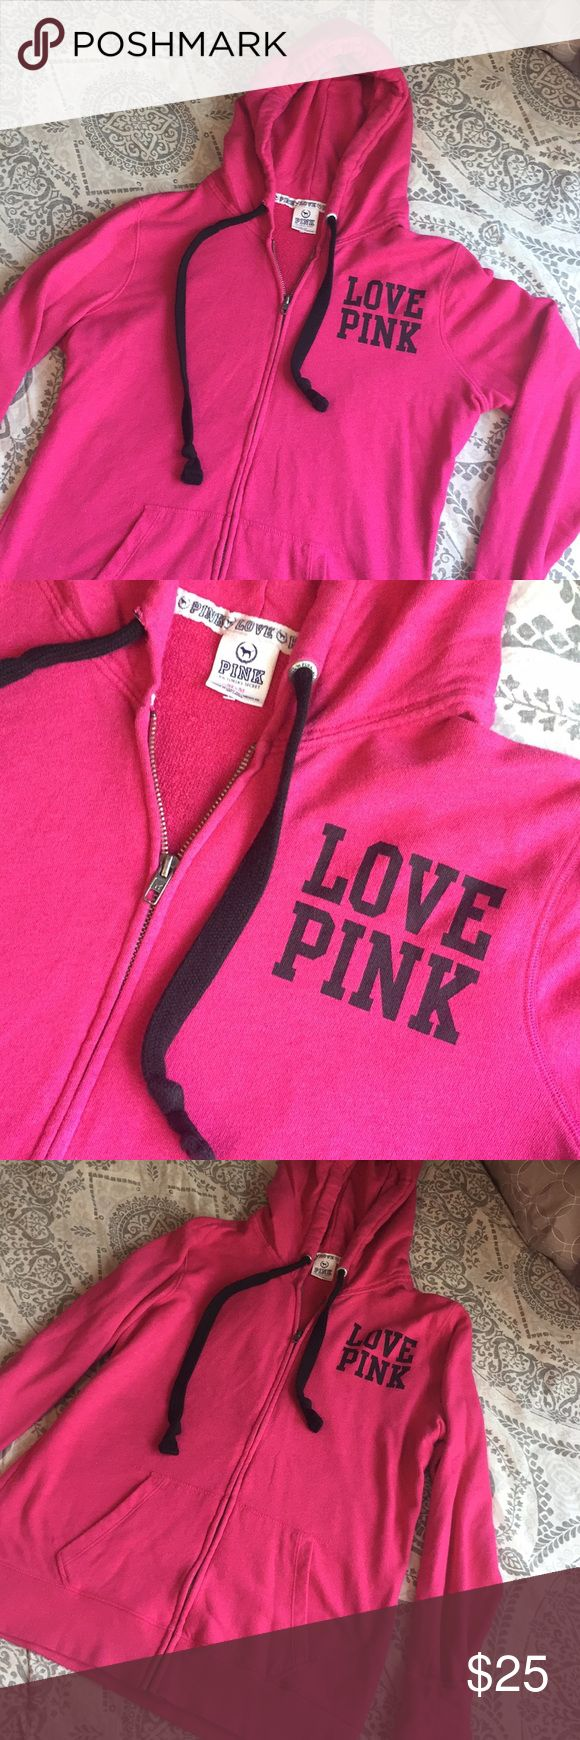 Pink by Victoria's Secret, Hot pink Zip up/ Size M Pink by Victoria's Secret/ Size M. Hot pink zip up hoodie. Super cozy, an oversized fit! Lovely color and detailing. As seen in last photo, the length goes past your waist. The style is that it is a longer hoodie. The only flaw in this the insert of the string came apart...can happily stitch it closed(just ask me to!) Other than that, no flaws, in great condition. Make an offer! / No trades / Smoke free home. Feel free to ask questions! PINK…